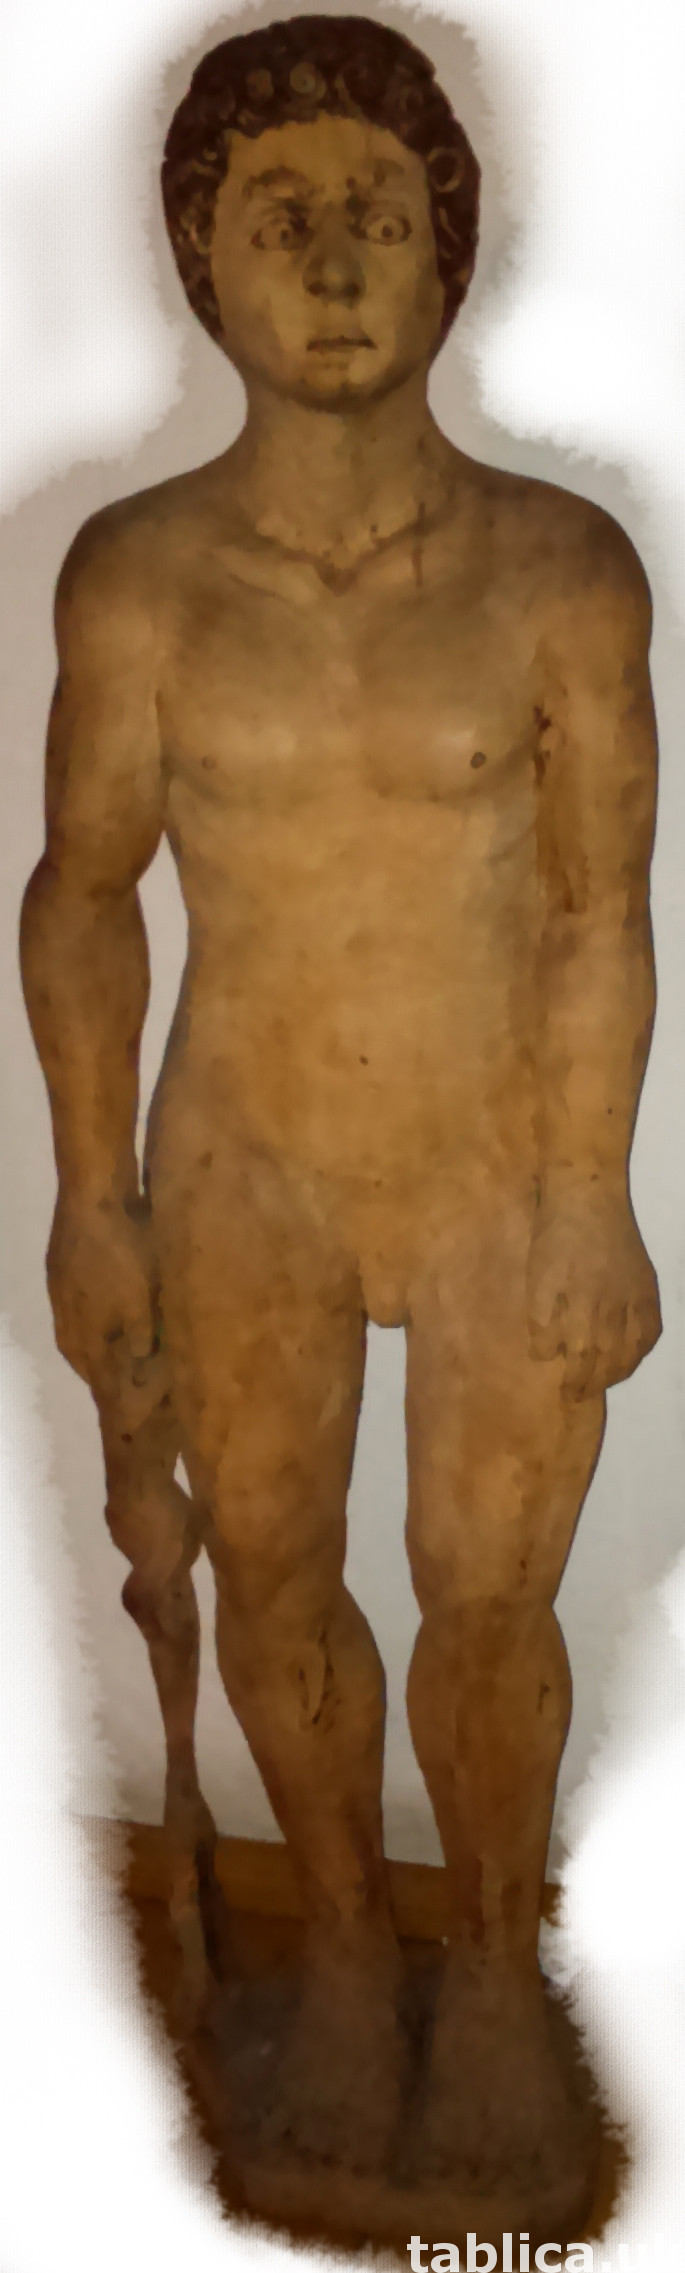 Sculpture: Staring Man - Solid Wood !!!  0